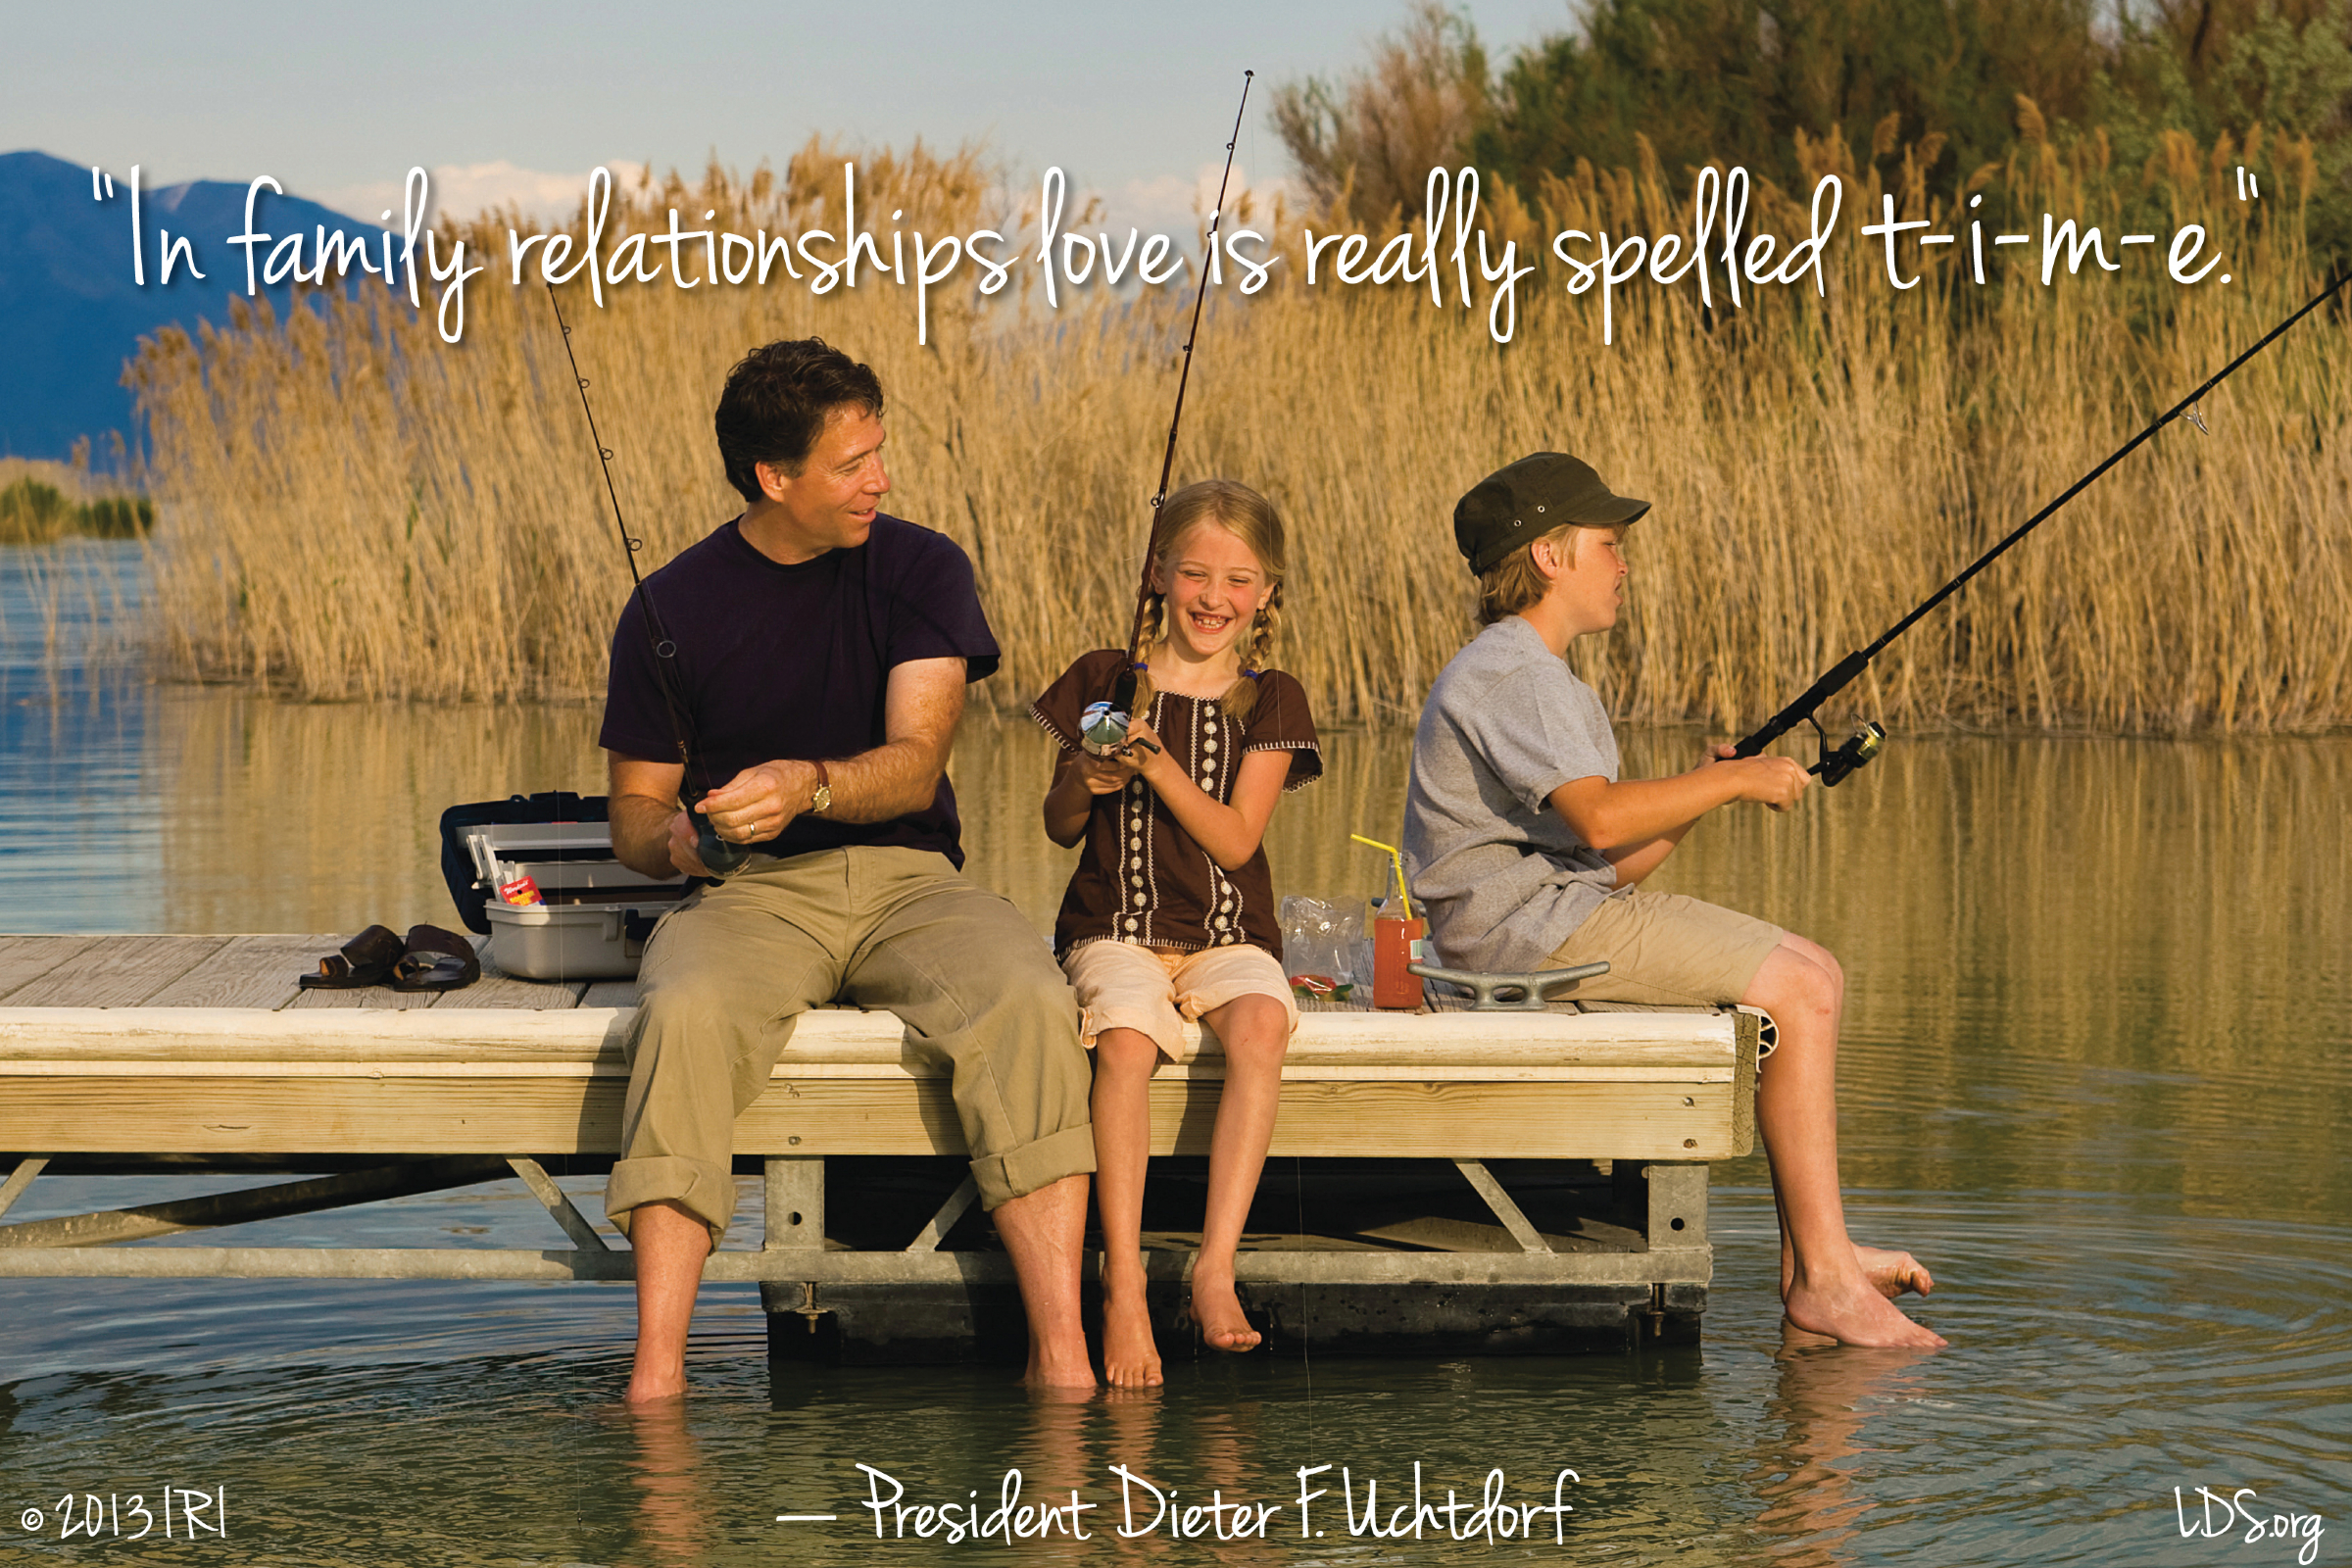 Love Fishing Quotes Love In Family Relationships